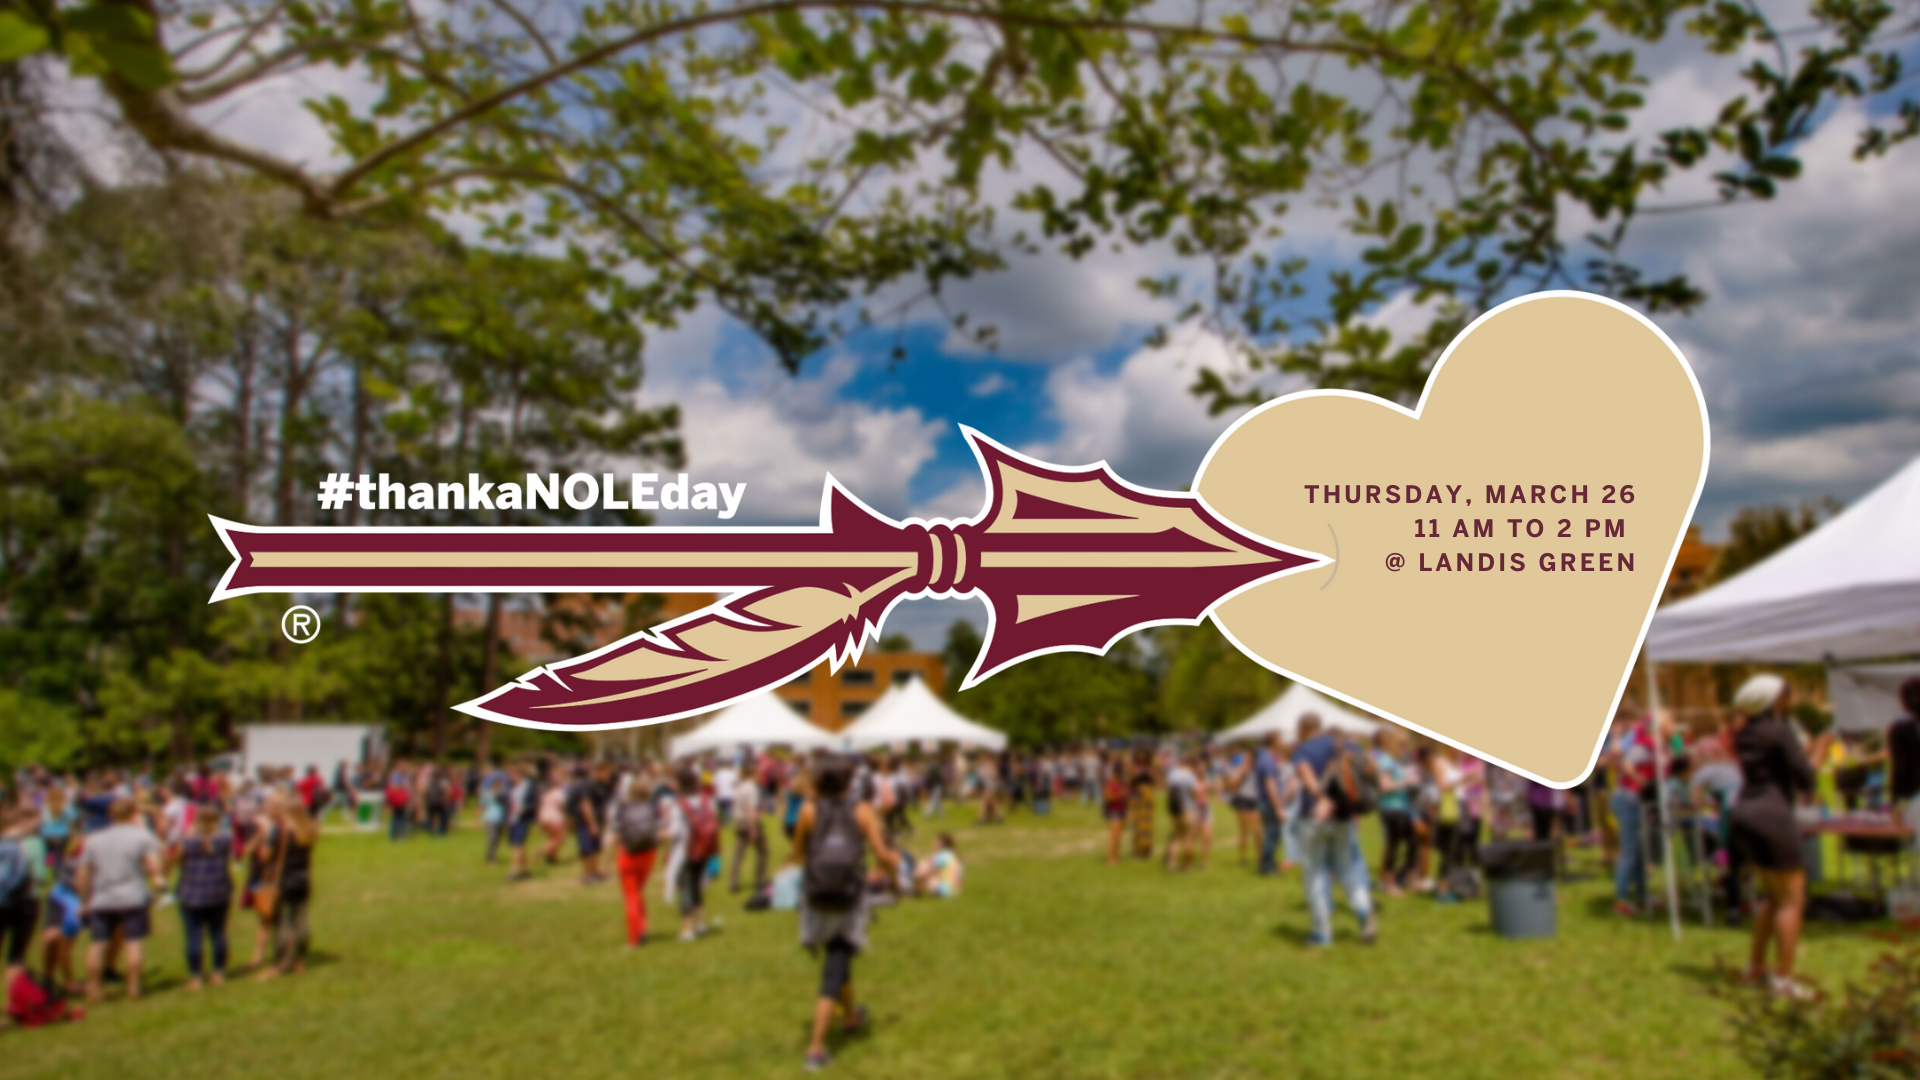 Image of Thank a Nole Day logo